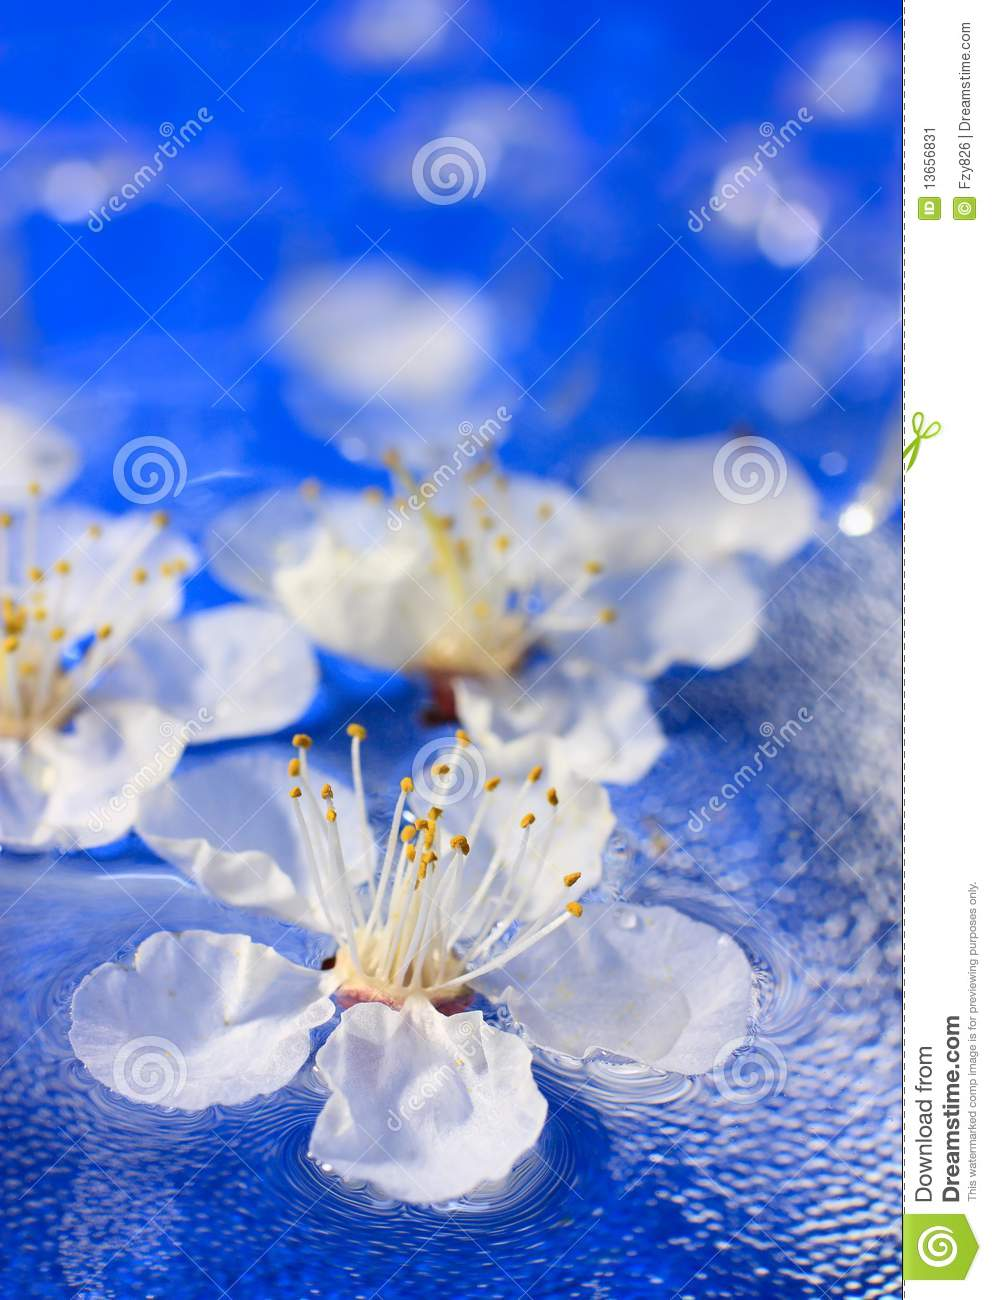 Flowers floating in water stock image image 13656831 for Floating flowers in water